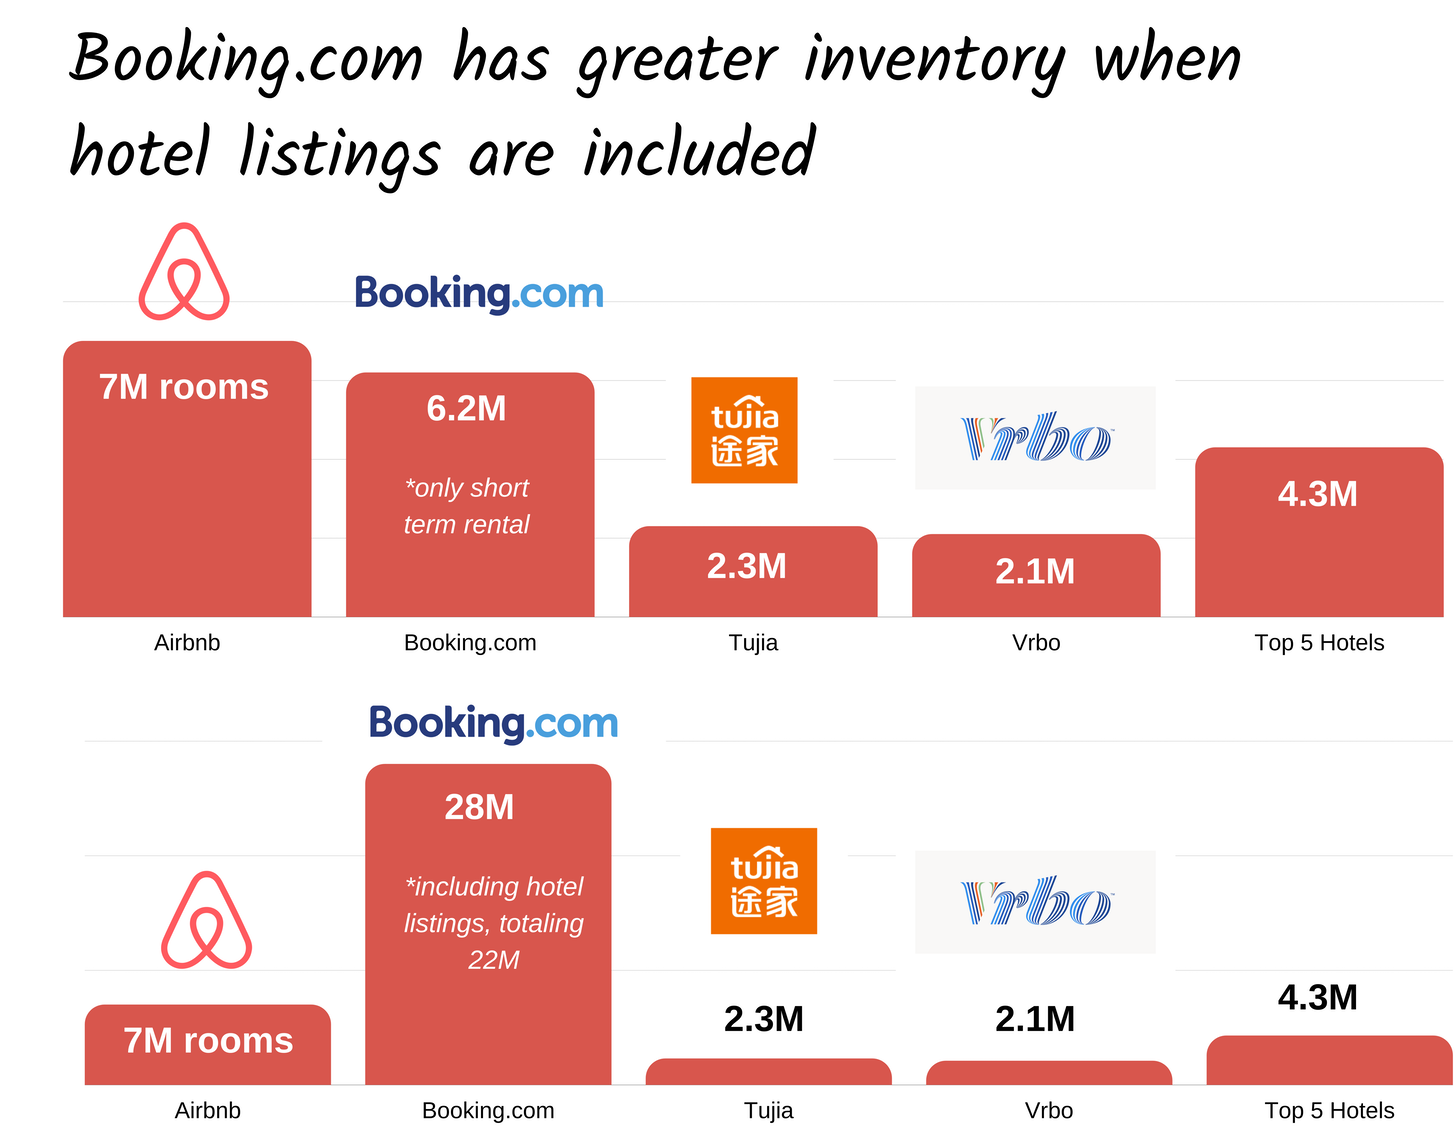 A chart comparing various booking startup inventory. Booking.com is greater than Airbnb when hotel listings are included